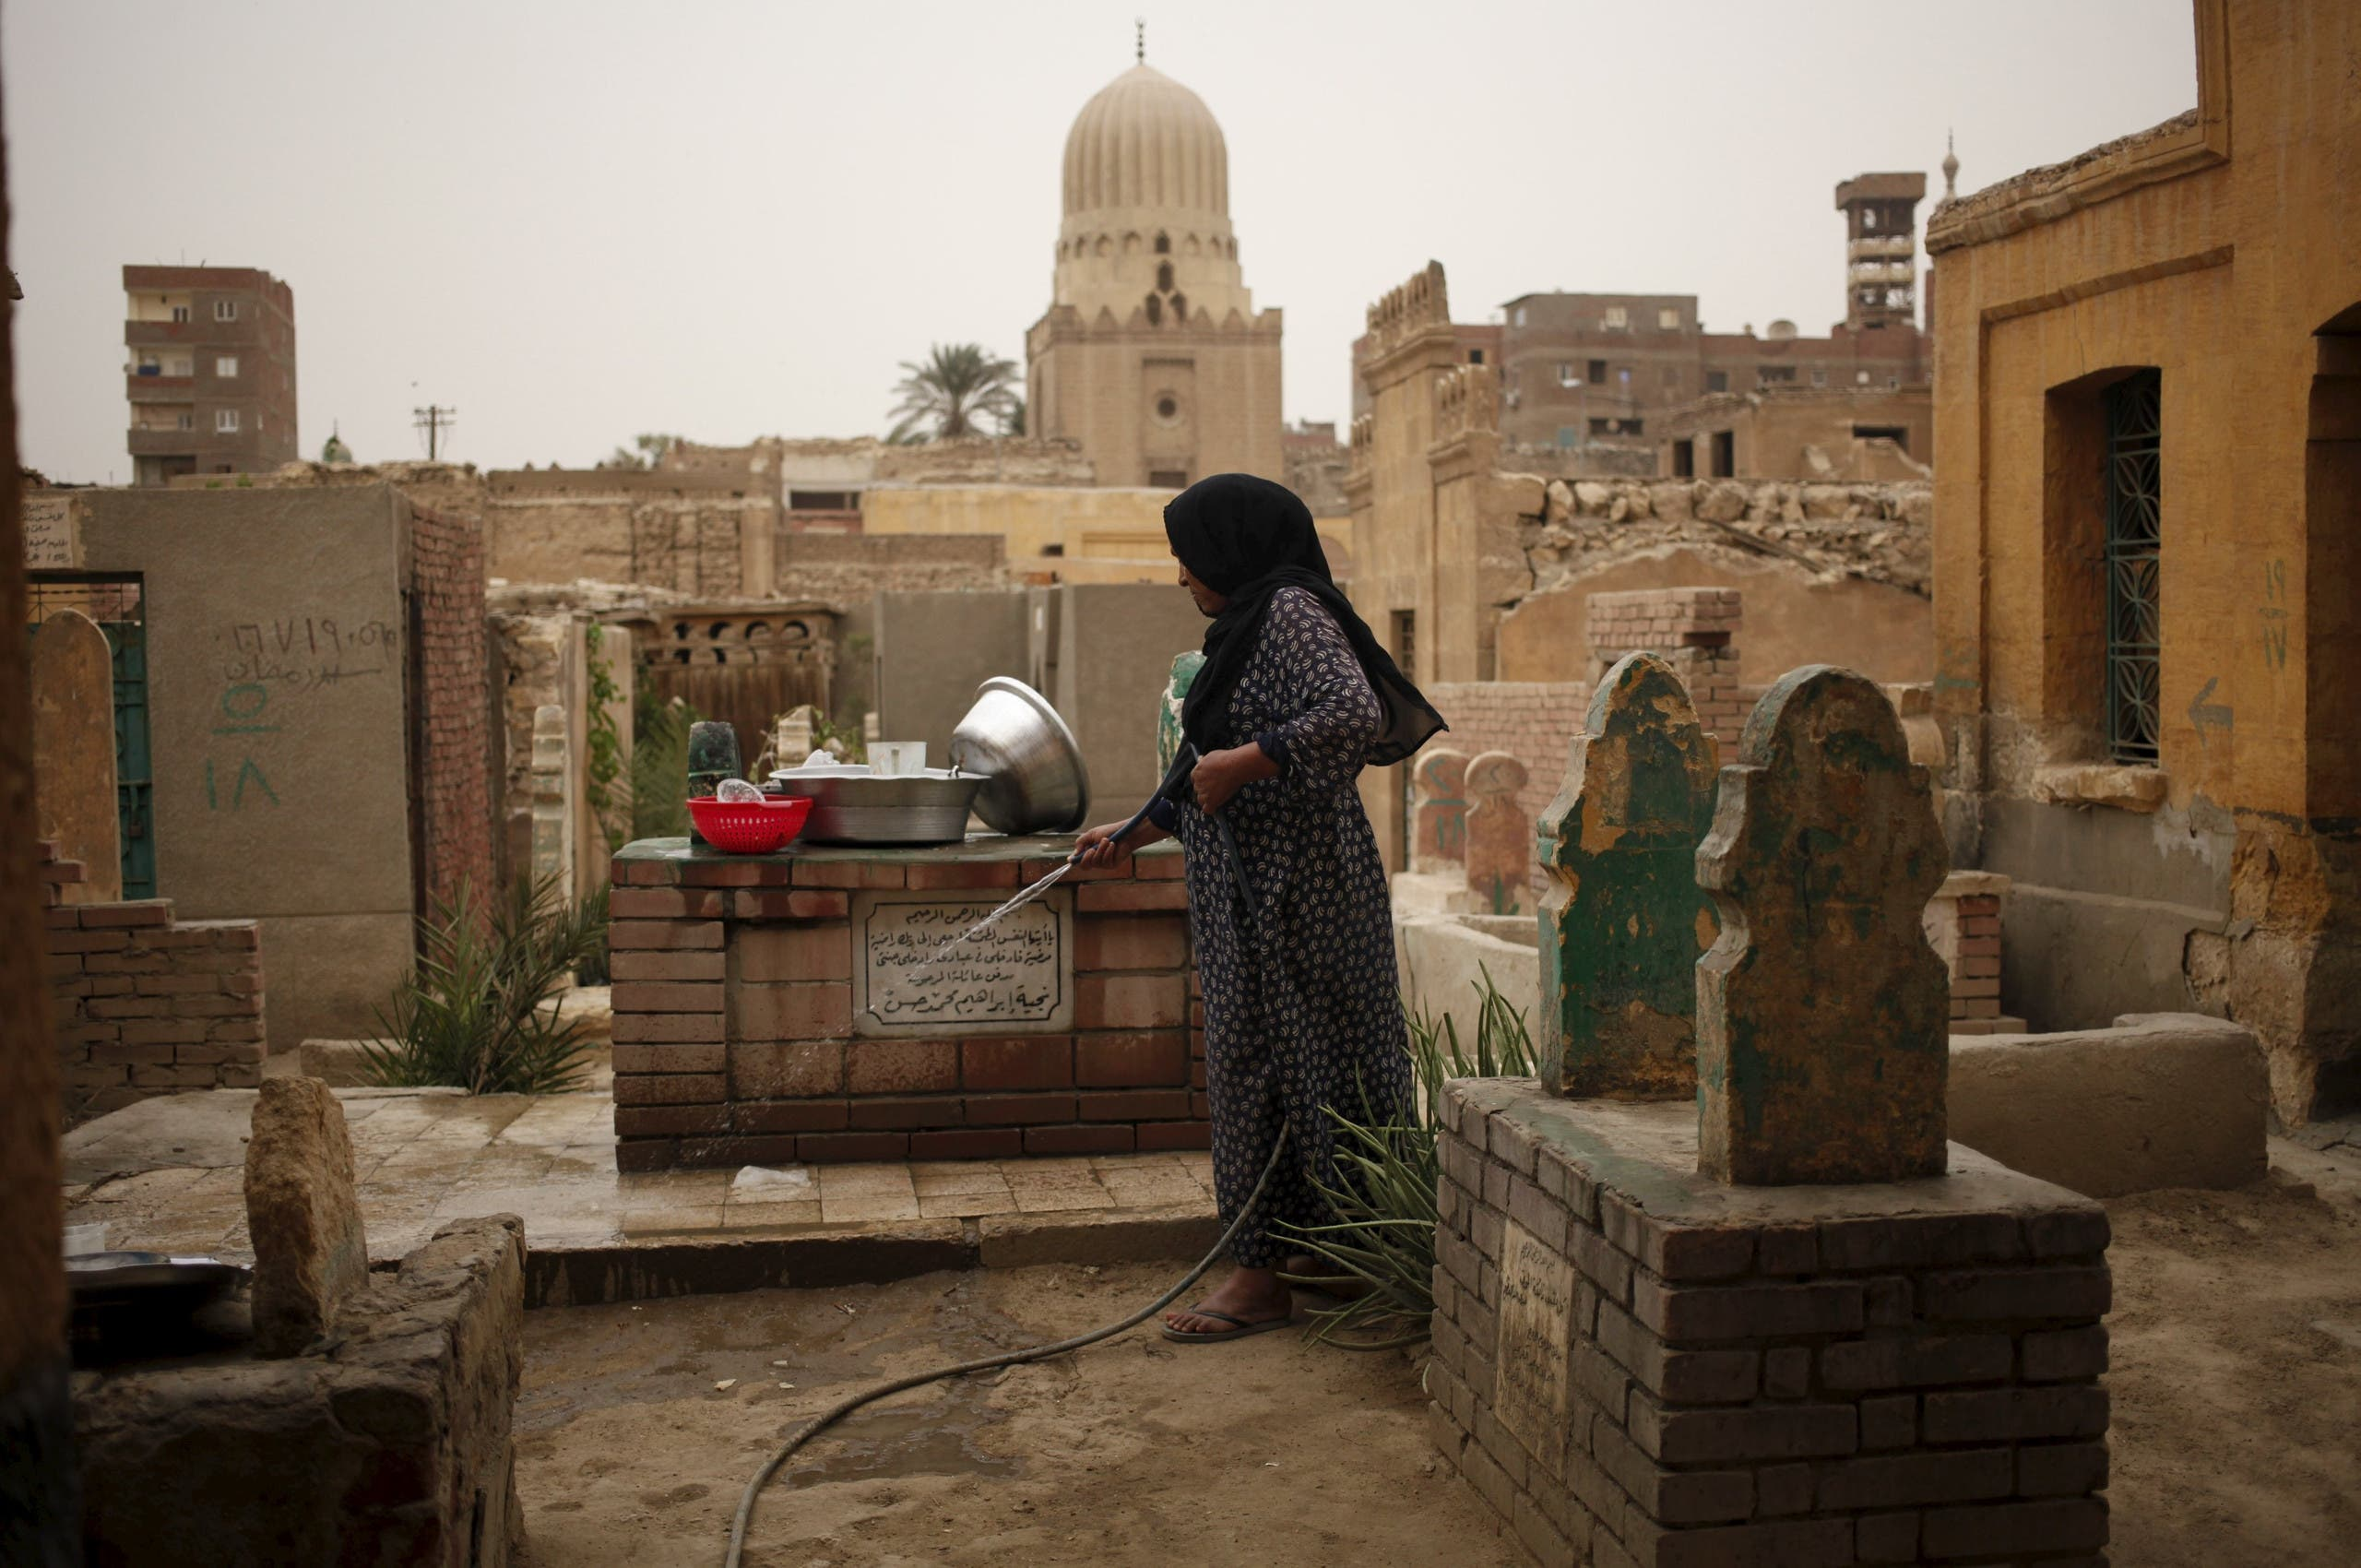 A woman who lives in the Cairo Necropolis cleans a tomb, outside her home in Cairo, Egypt, October 23, 2015.